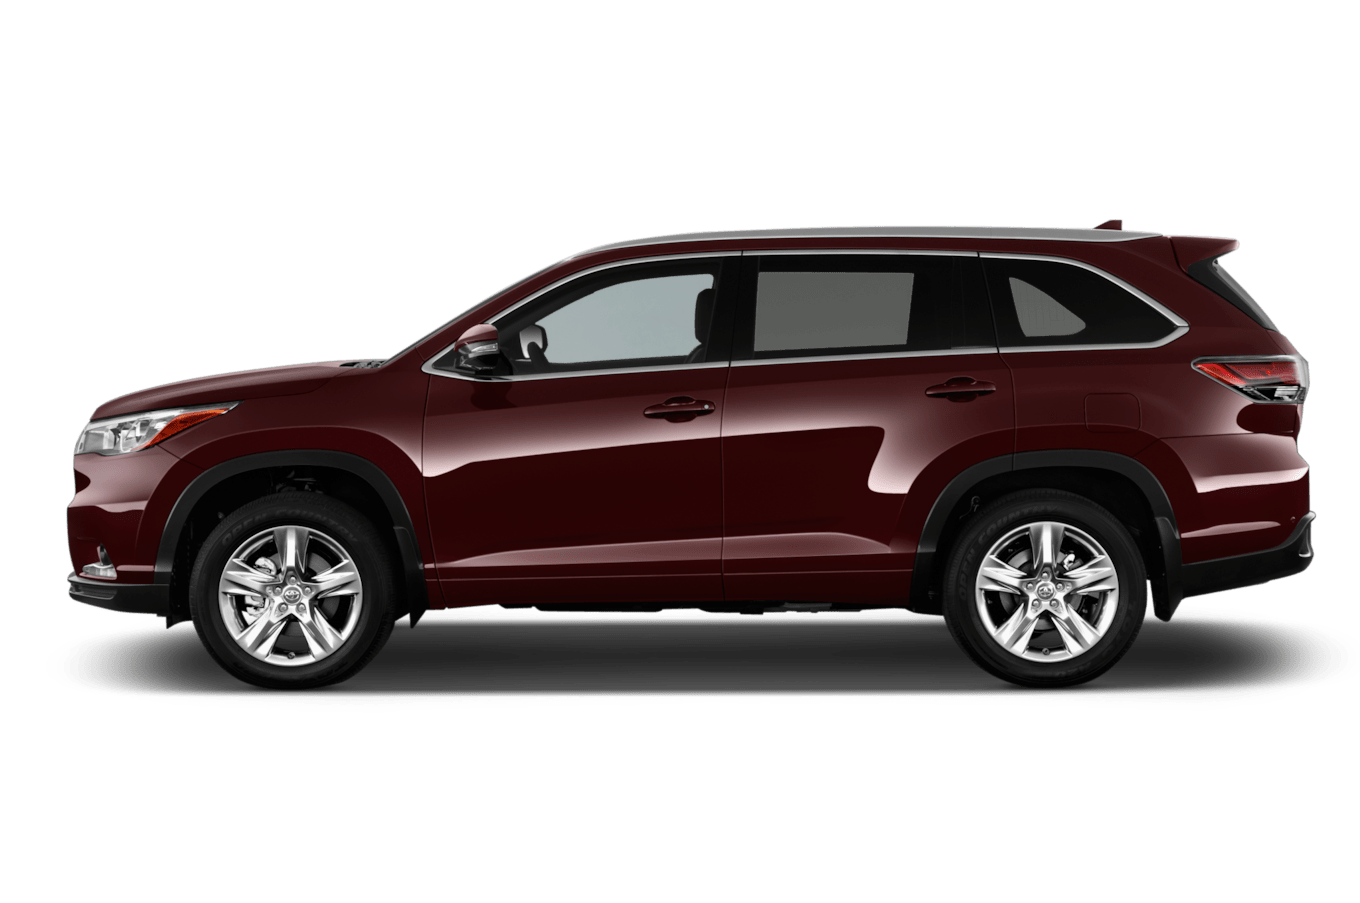 hight resolution of 2015 toyota highlander reviews and rating motor trend 6 6